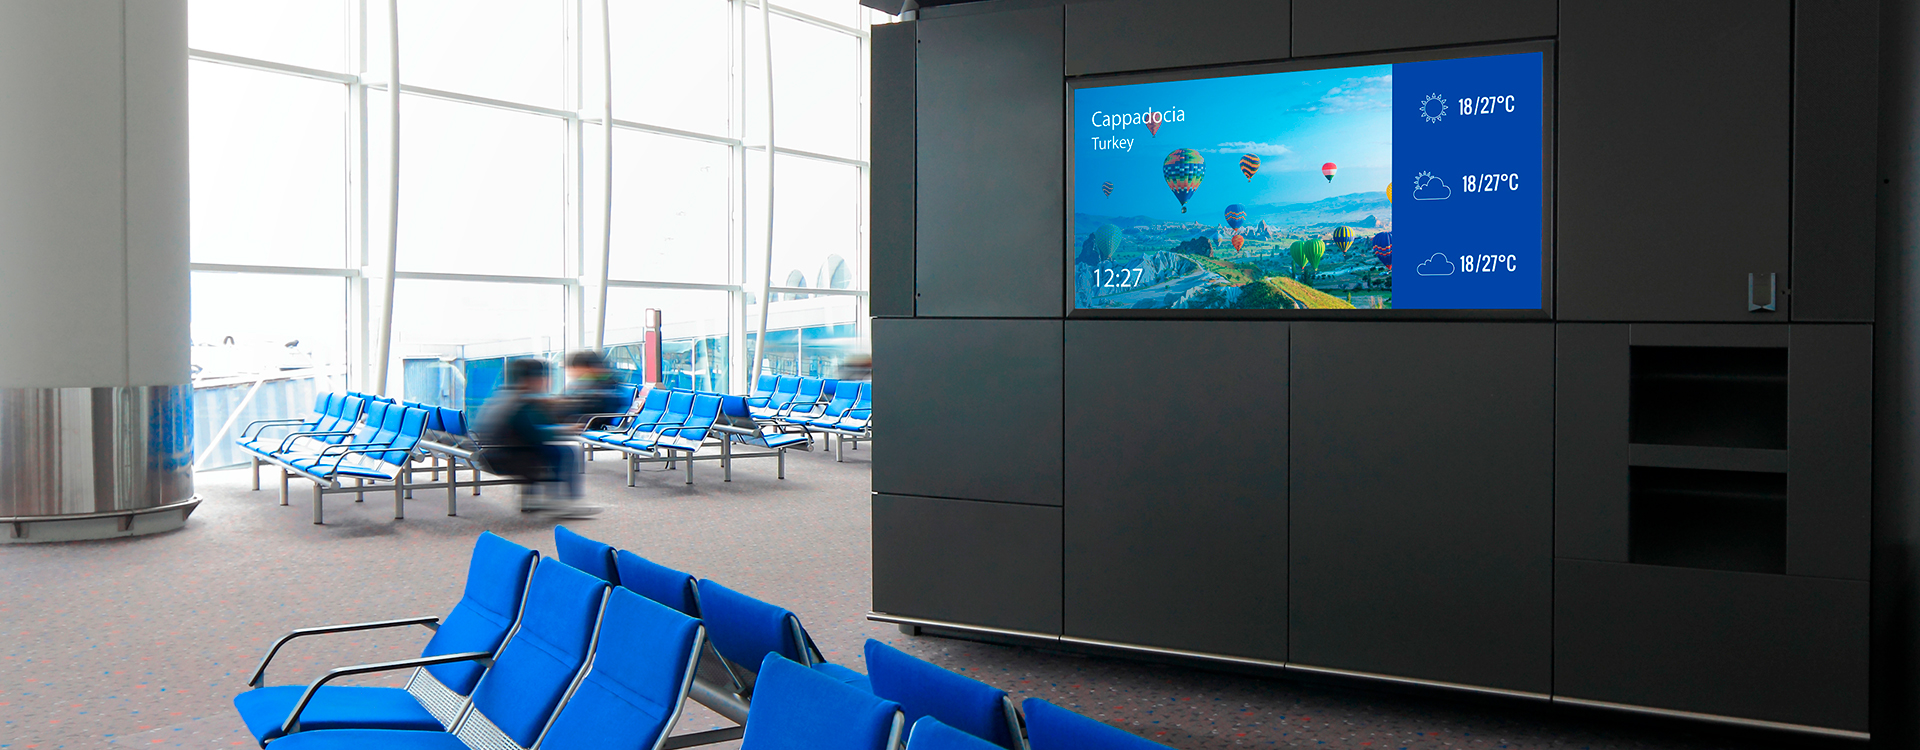 digital signage display in airport